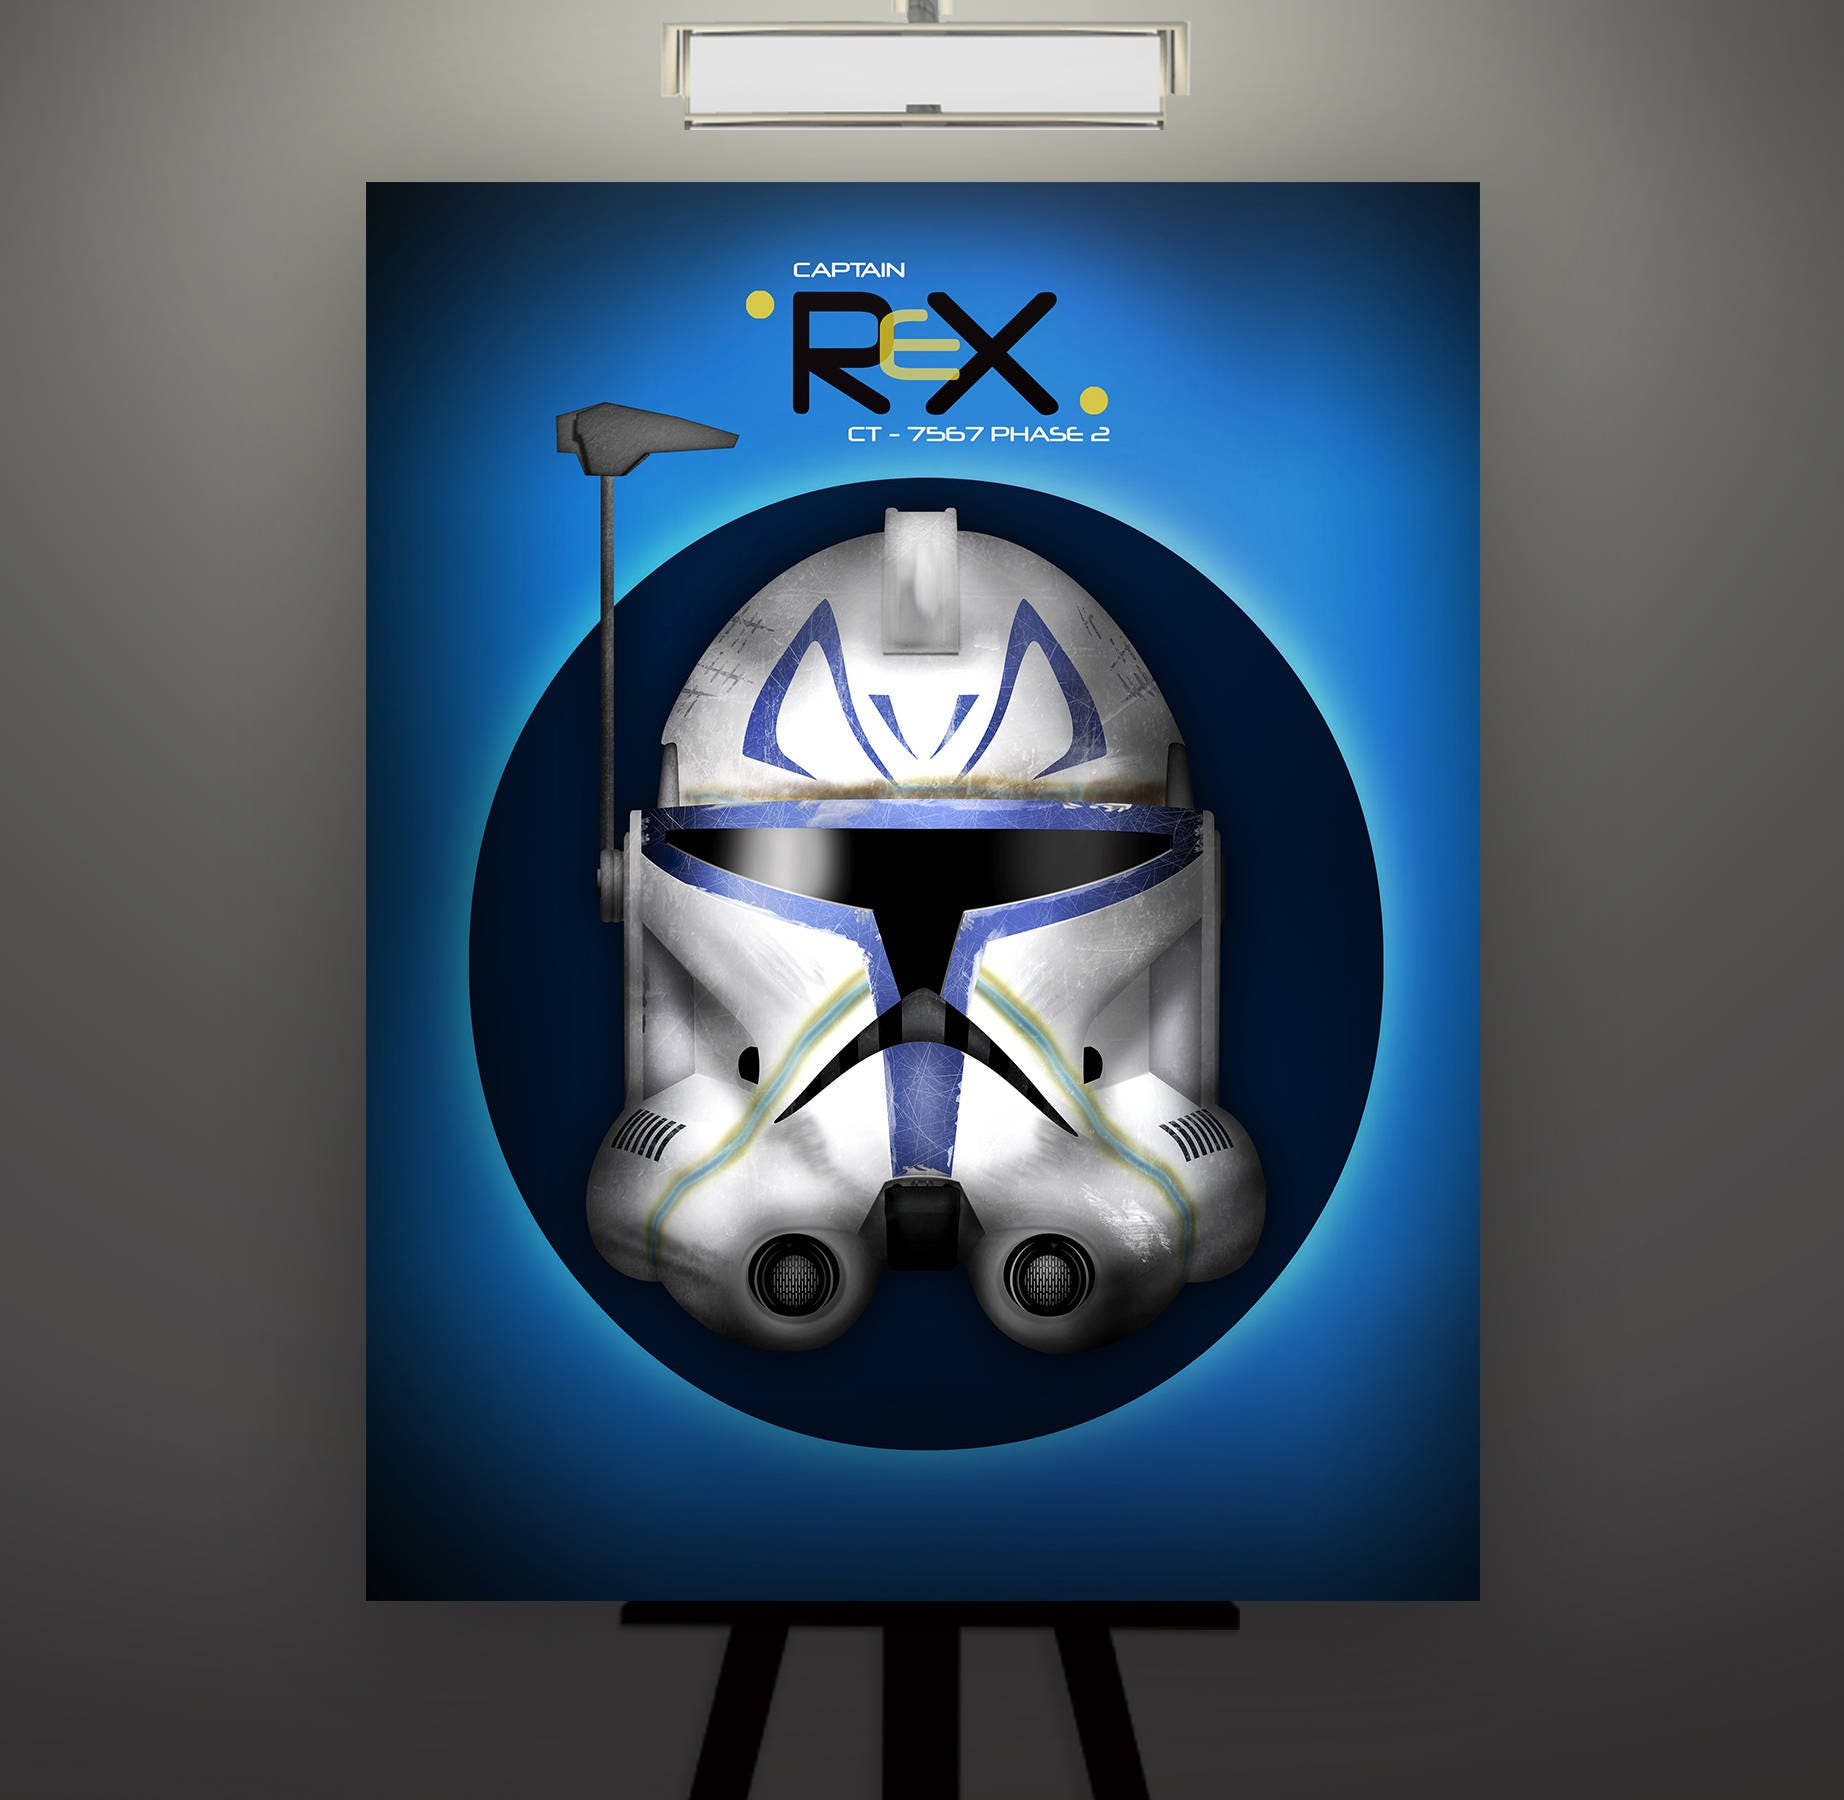 star wars inspired captain rex phase 2 clone trooper helmet